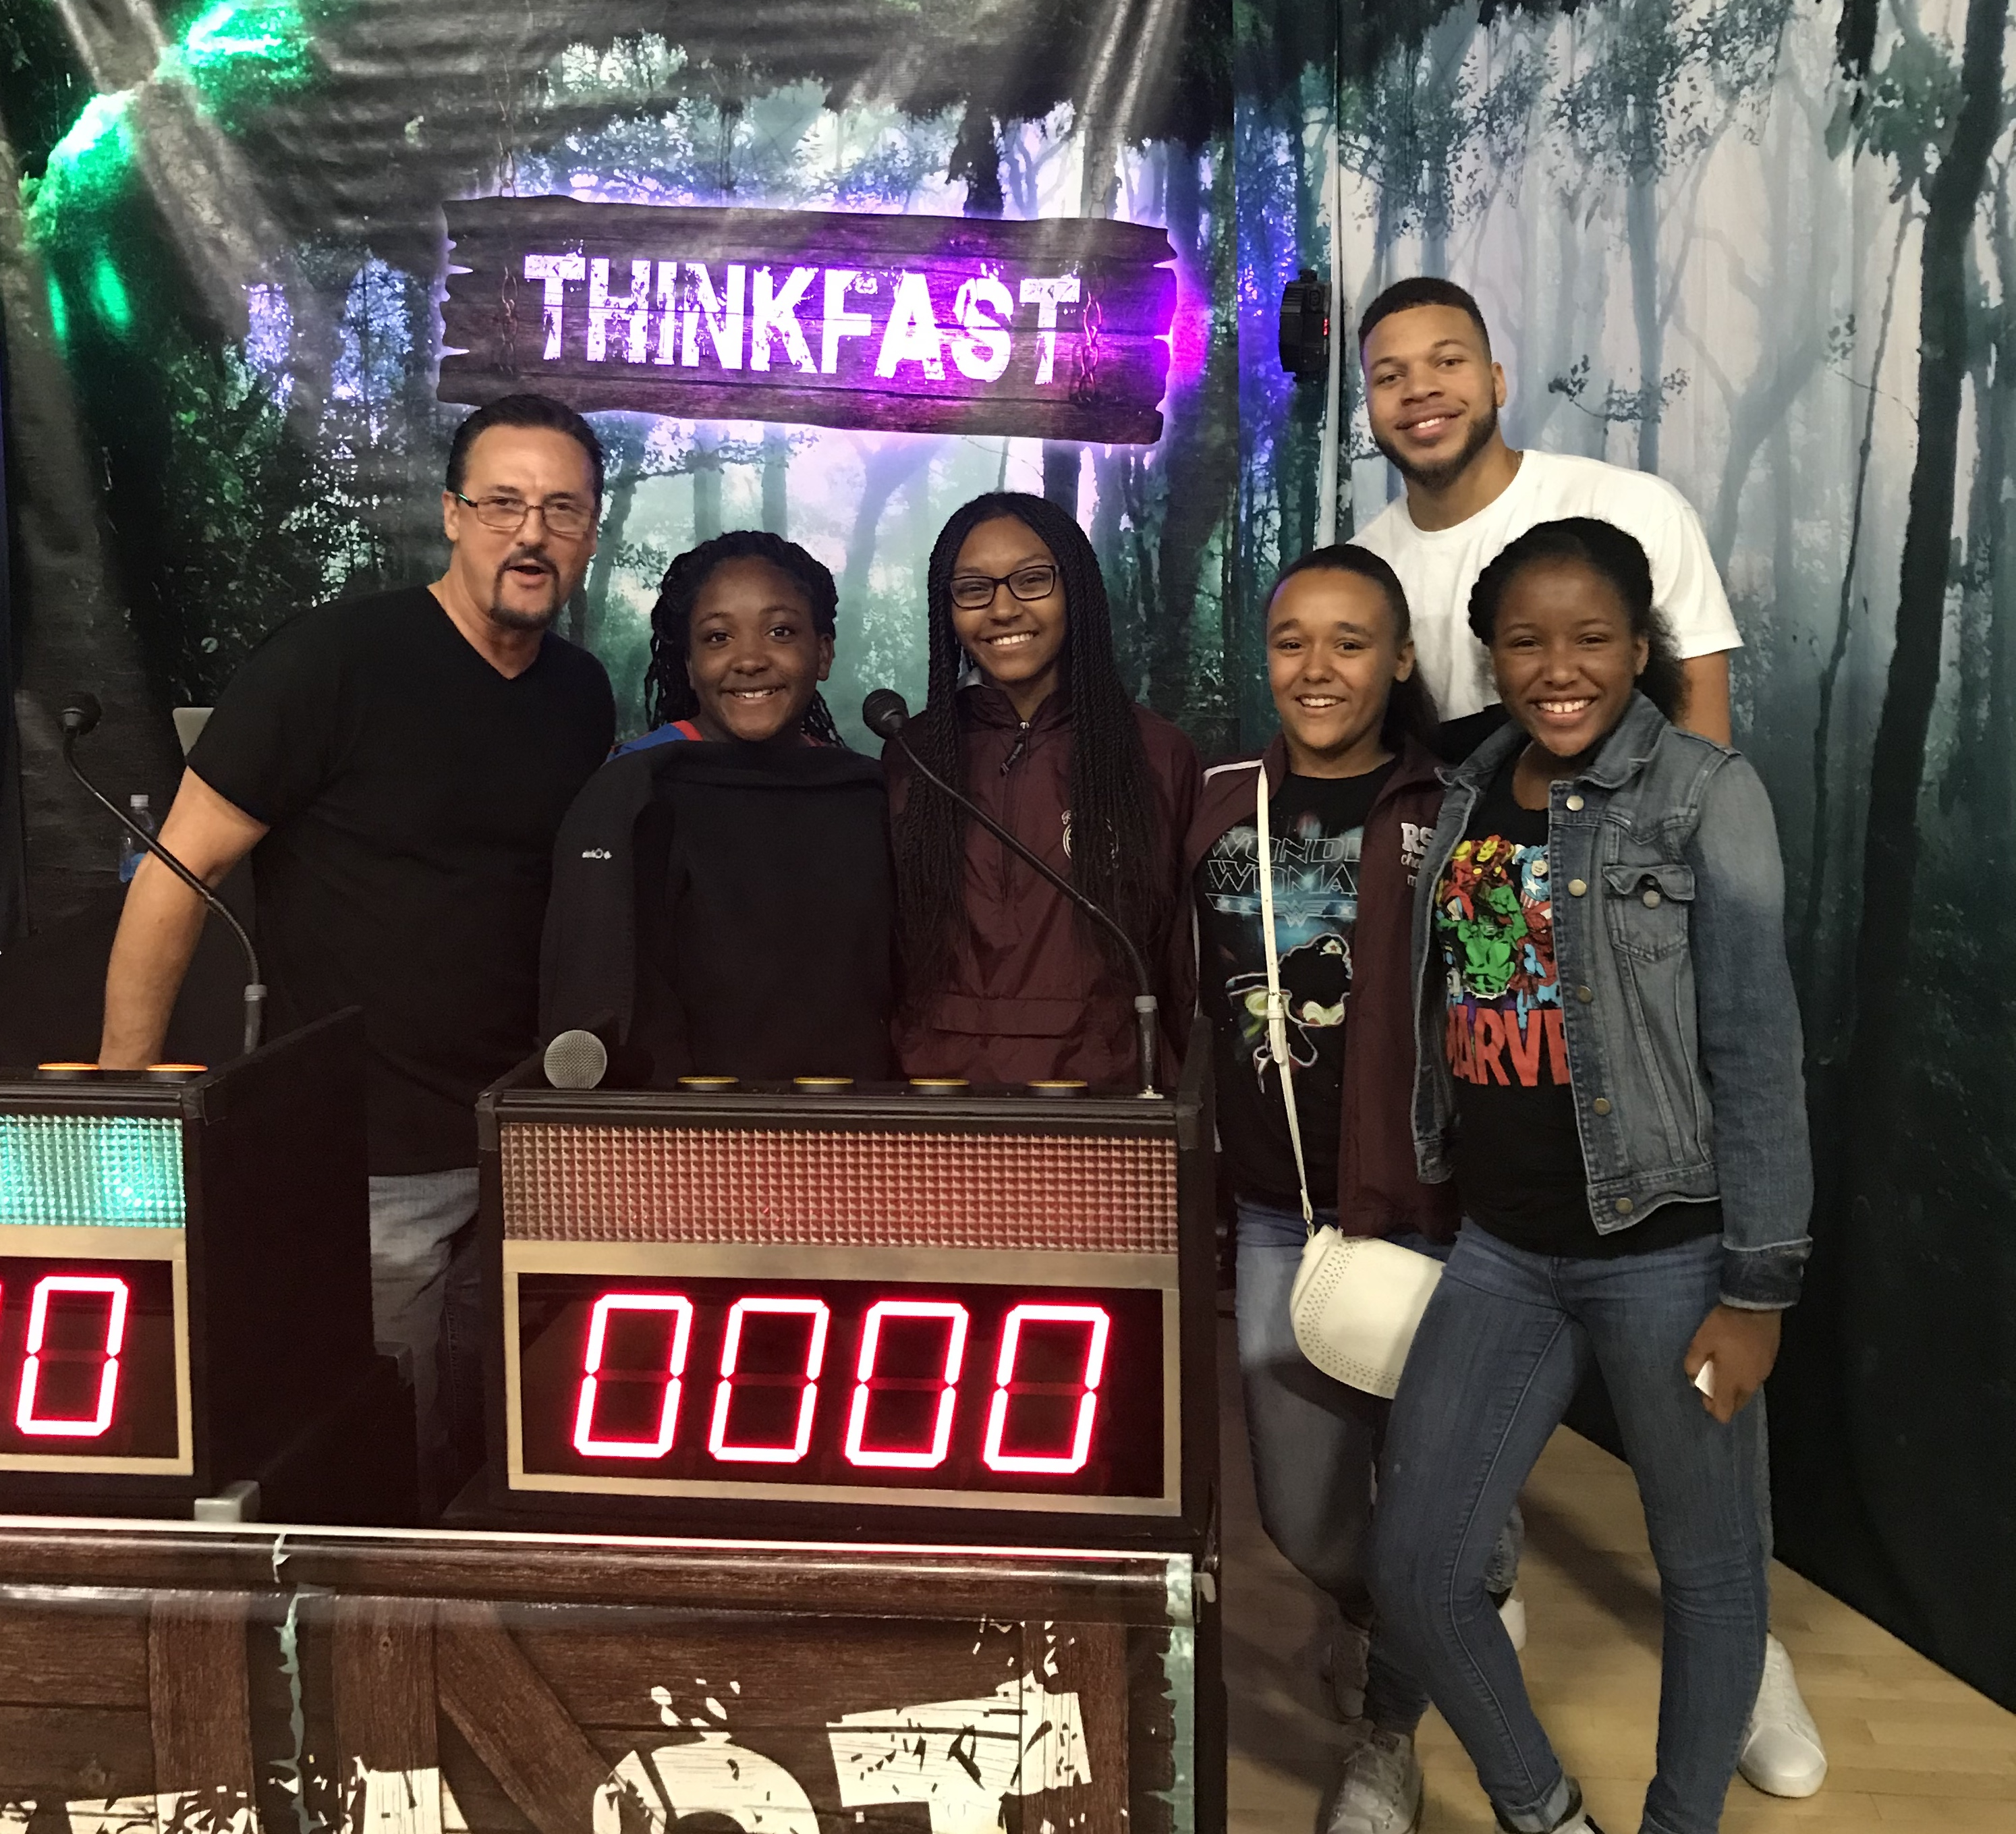 Winners of the Thinkfast Interactive Assembly!